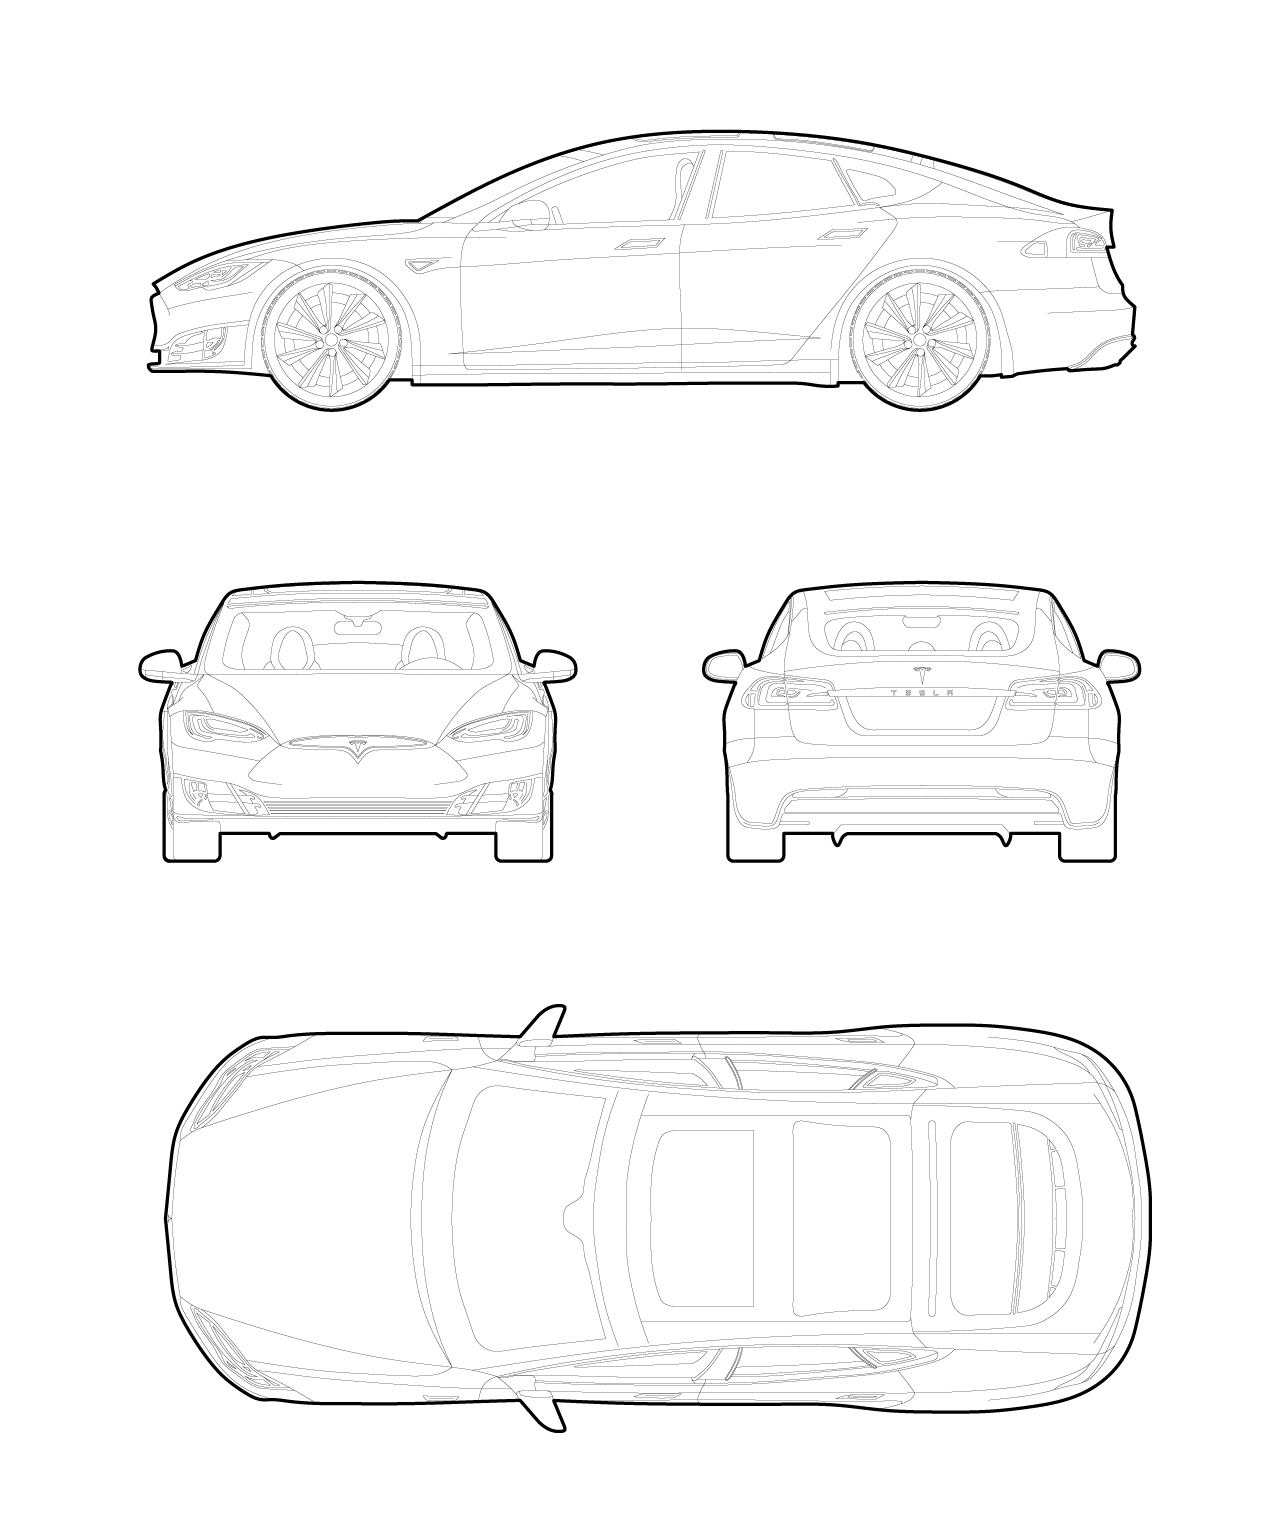 Drawing of a Tesla model S cars dwg